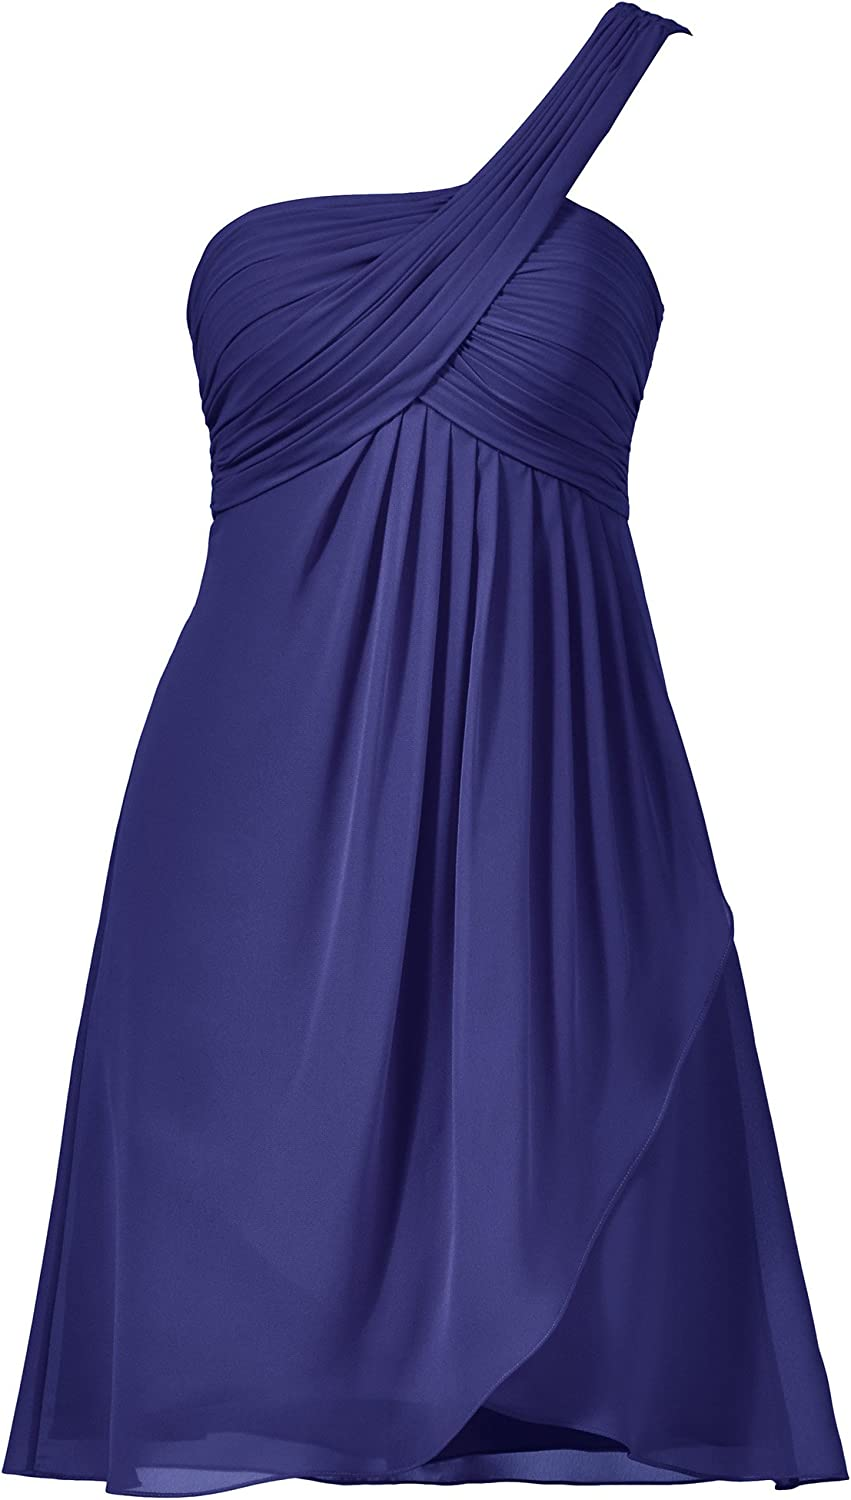 Alicepub Short One Shoulder Bridesmaid Dress Front Spilt Evening Party Prom Gown